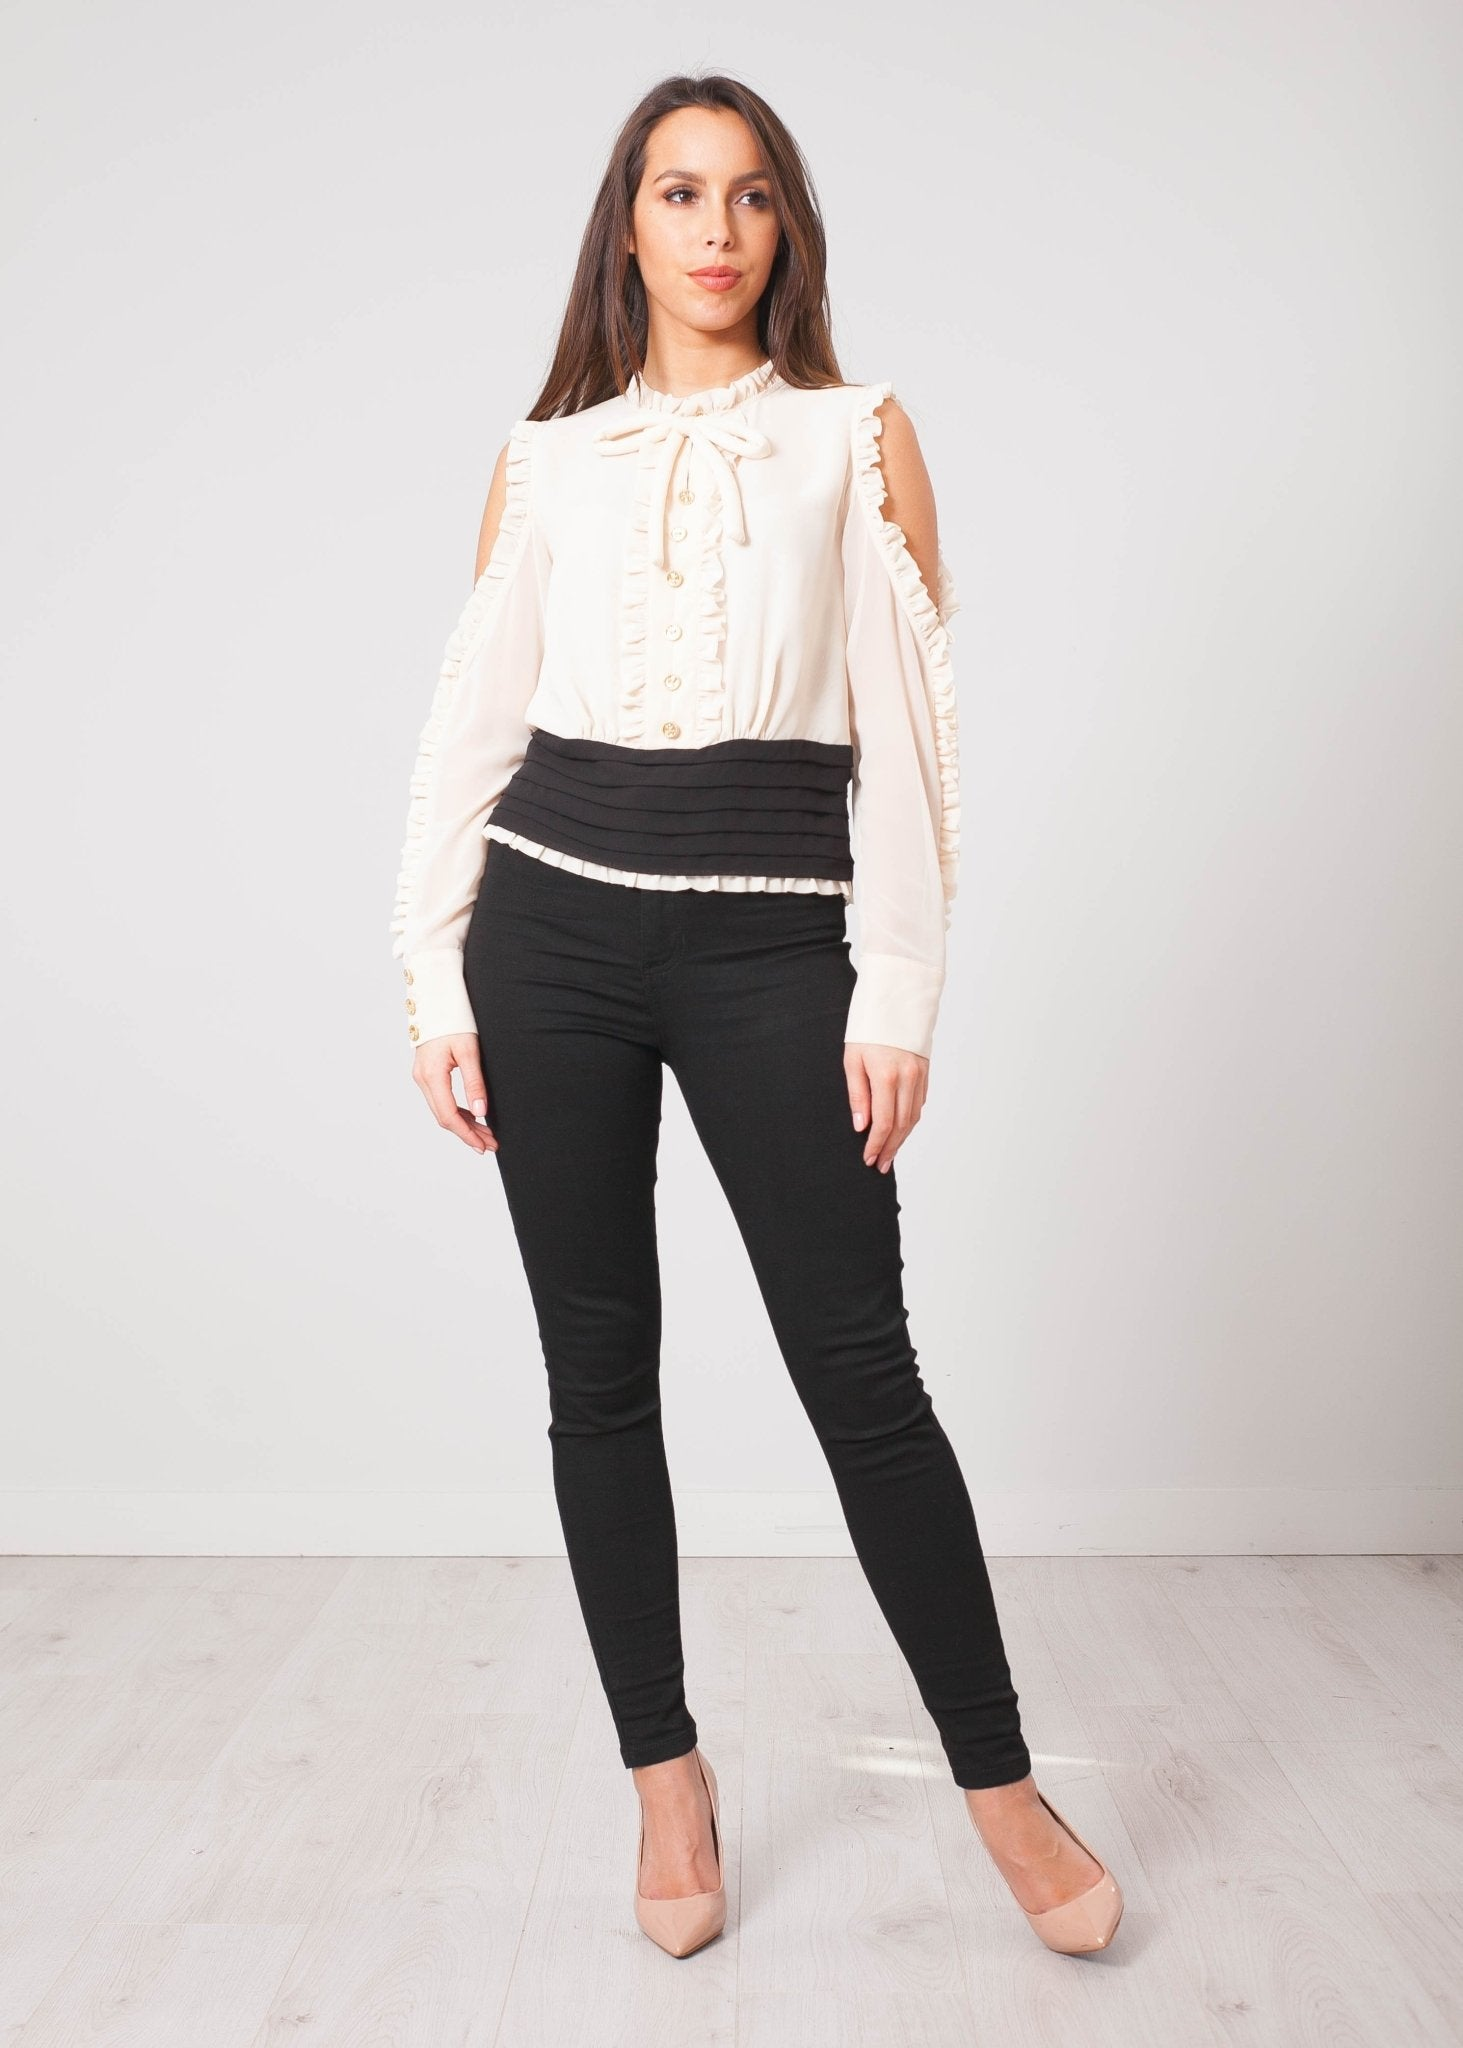 Aliyah Cream Open Sleeve Top - The Walk in Wardrobe